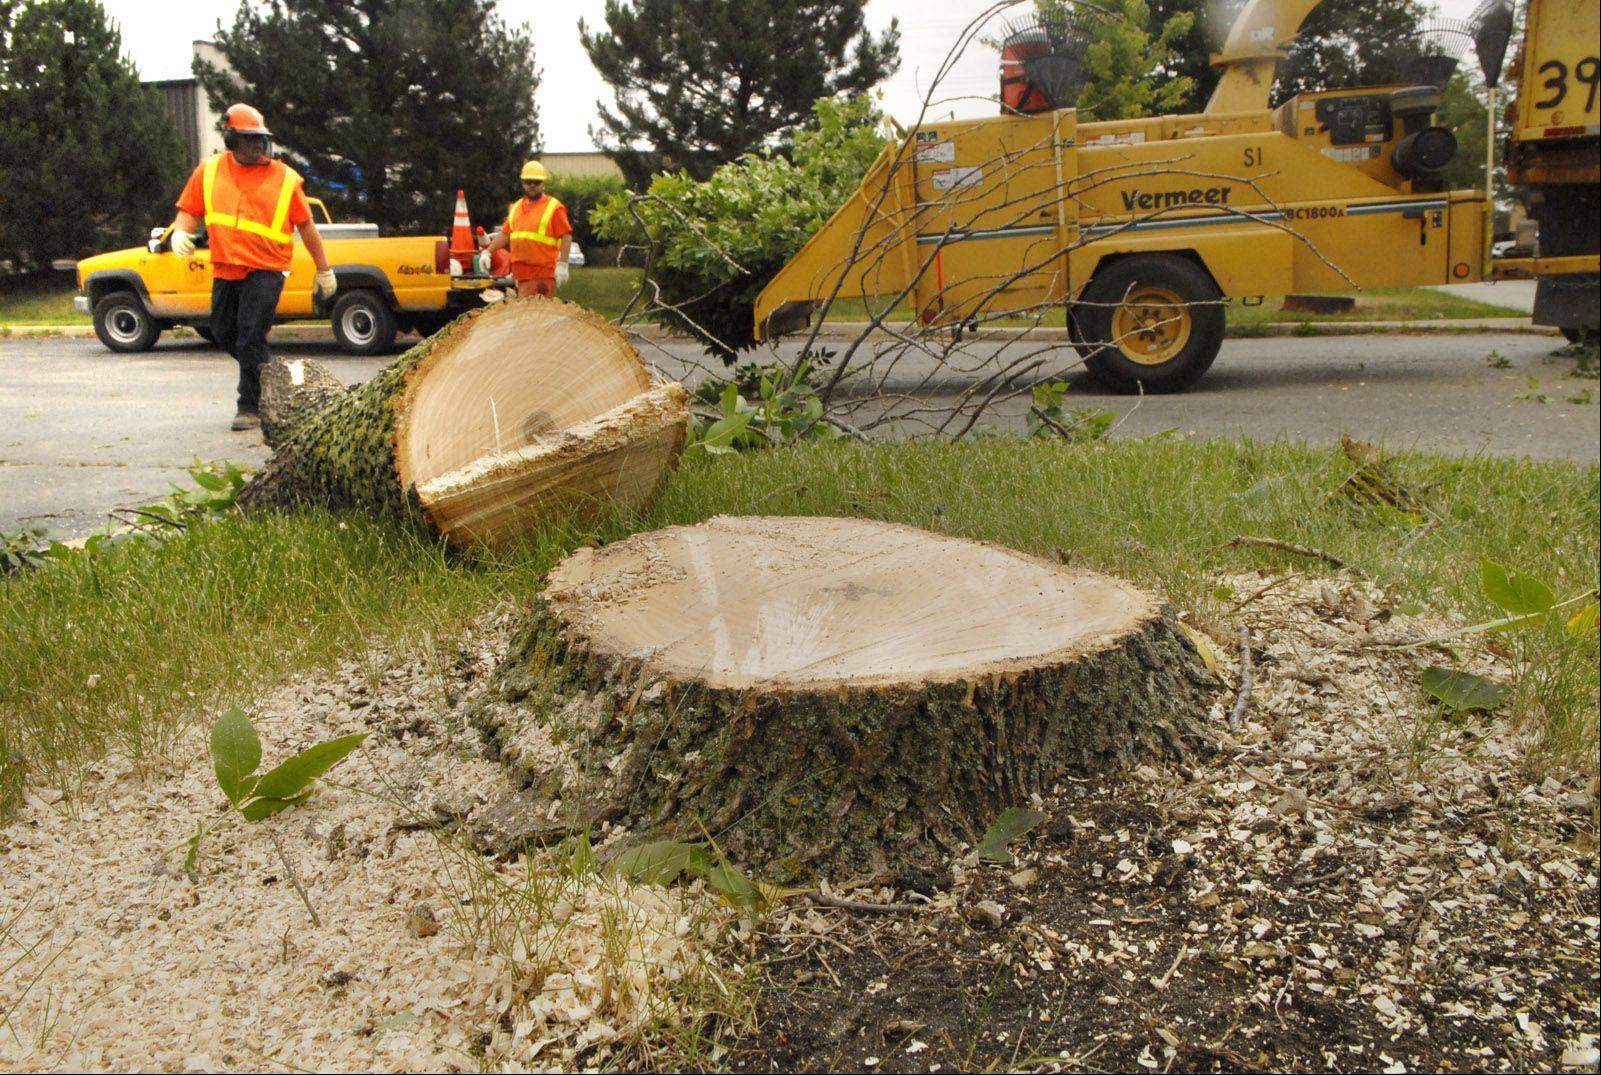 Ash trees in Buffalo Grove are dying at a rate faster than expected, officials say, causing the village to cut down hundreds more trees than the 1,000 targeted for removal this year. Officials blame the increase on last year's dry weather.